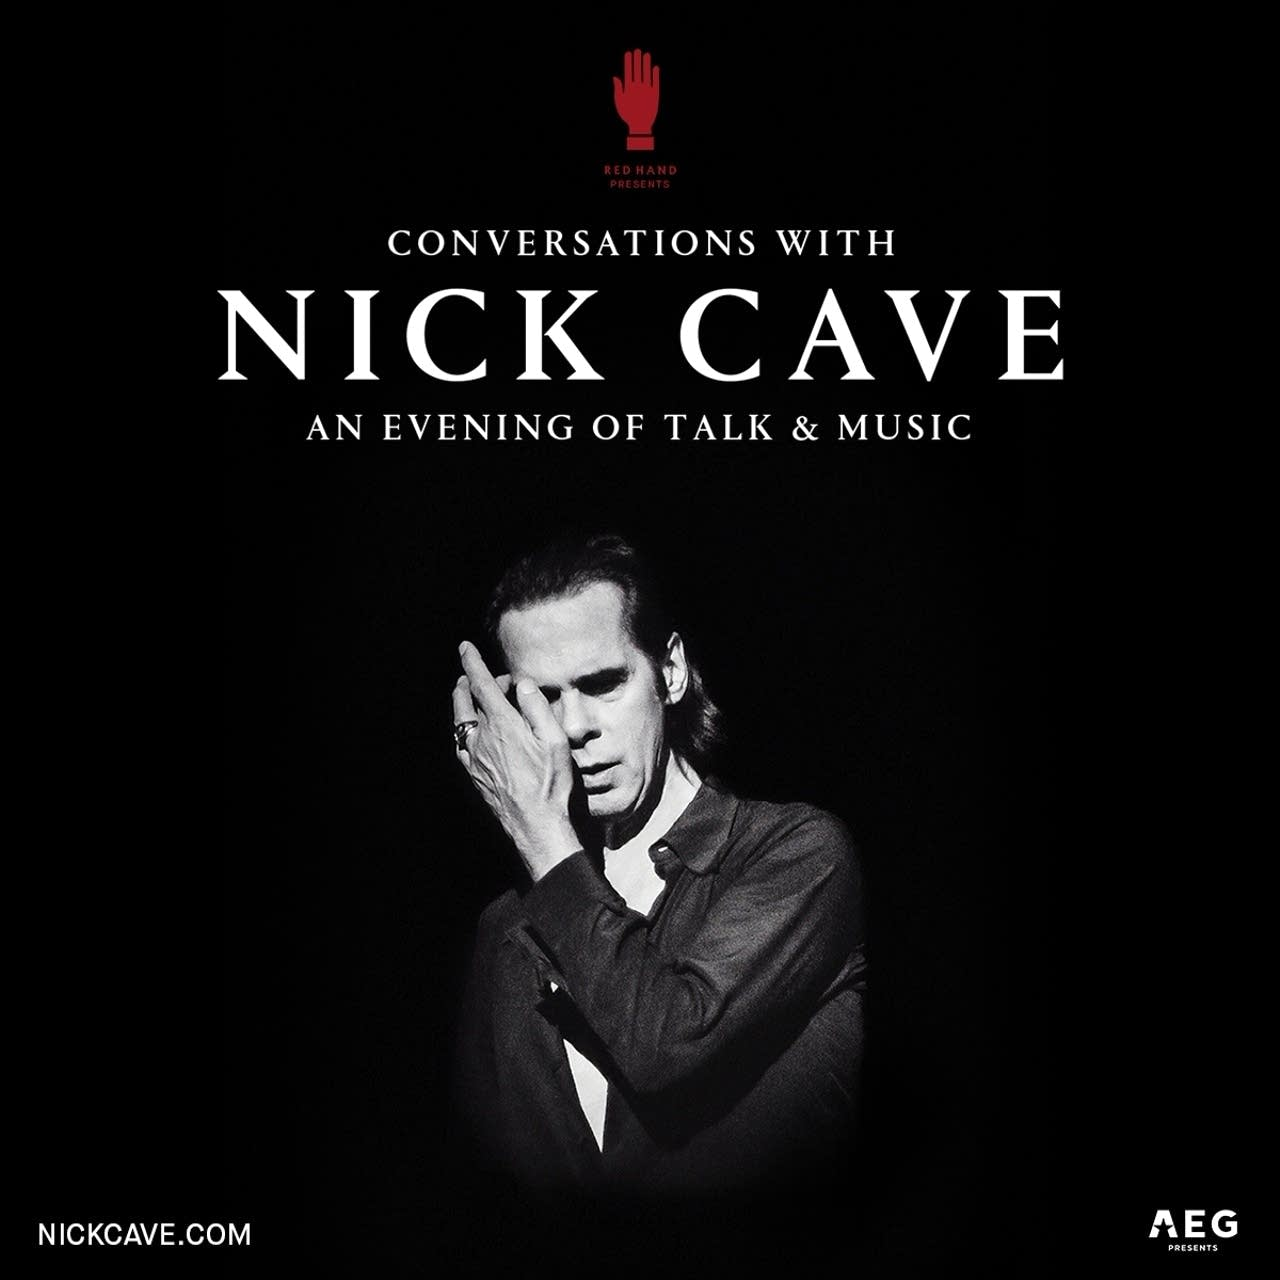 Nick Cave an evening of talk and music